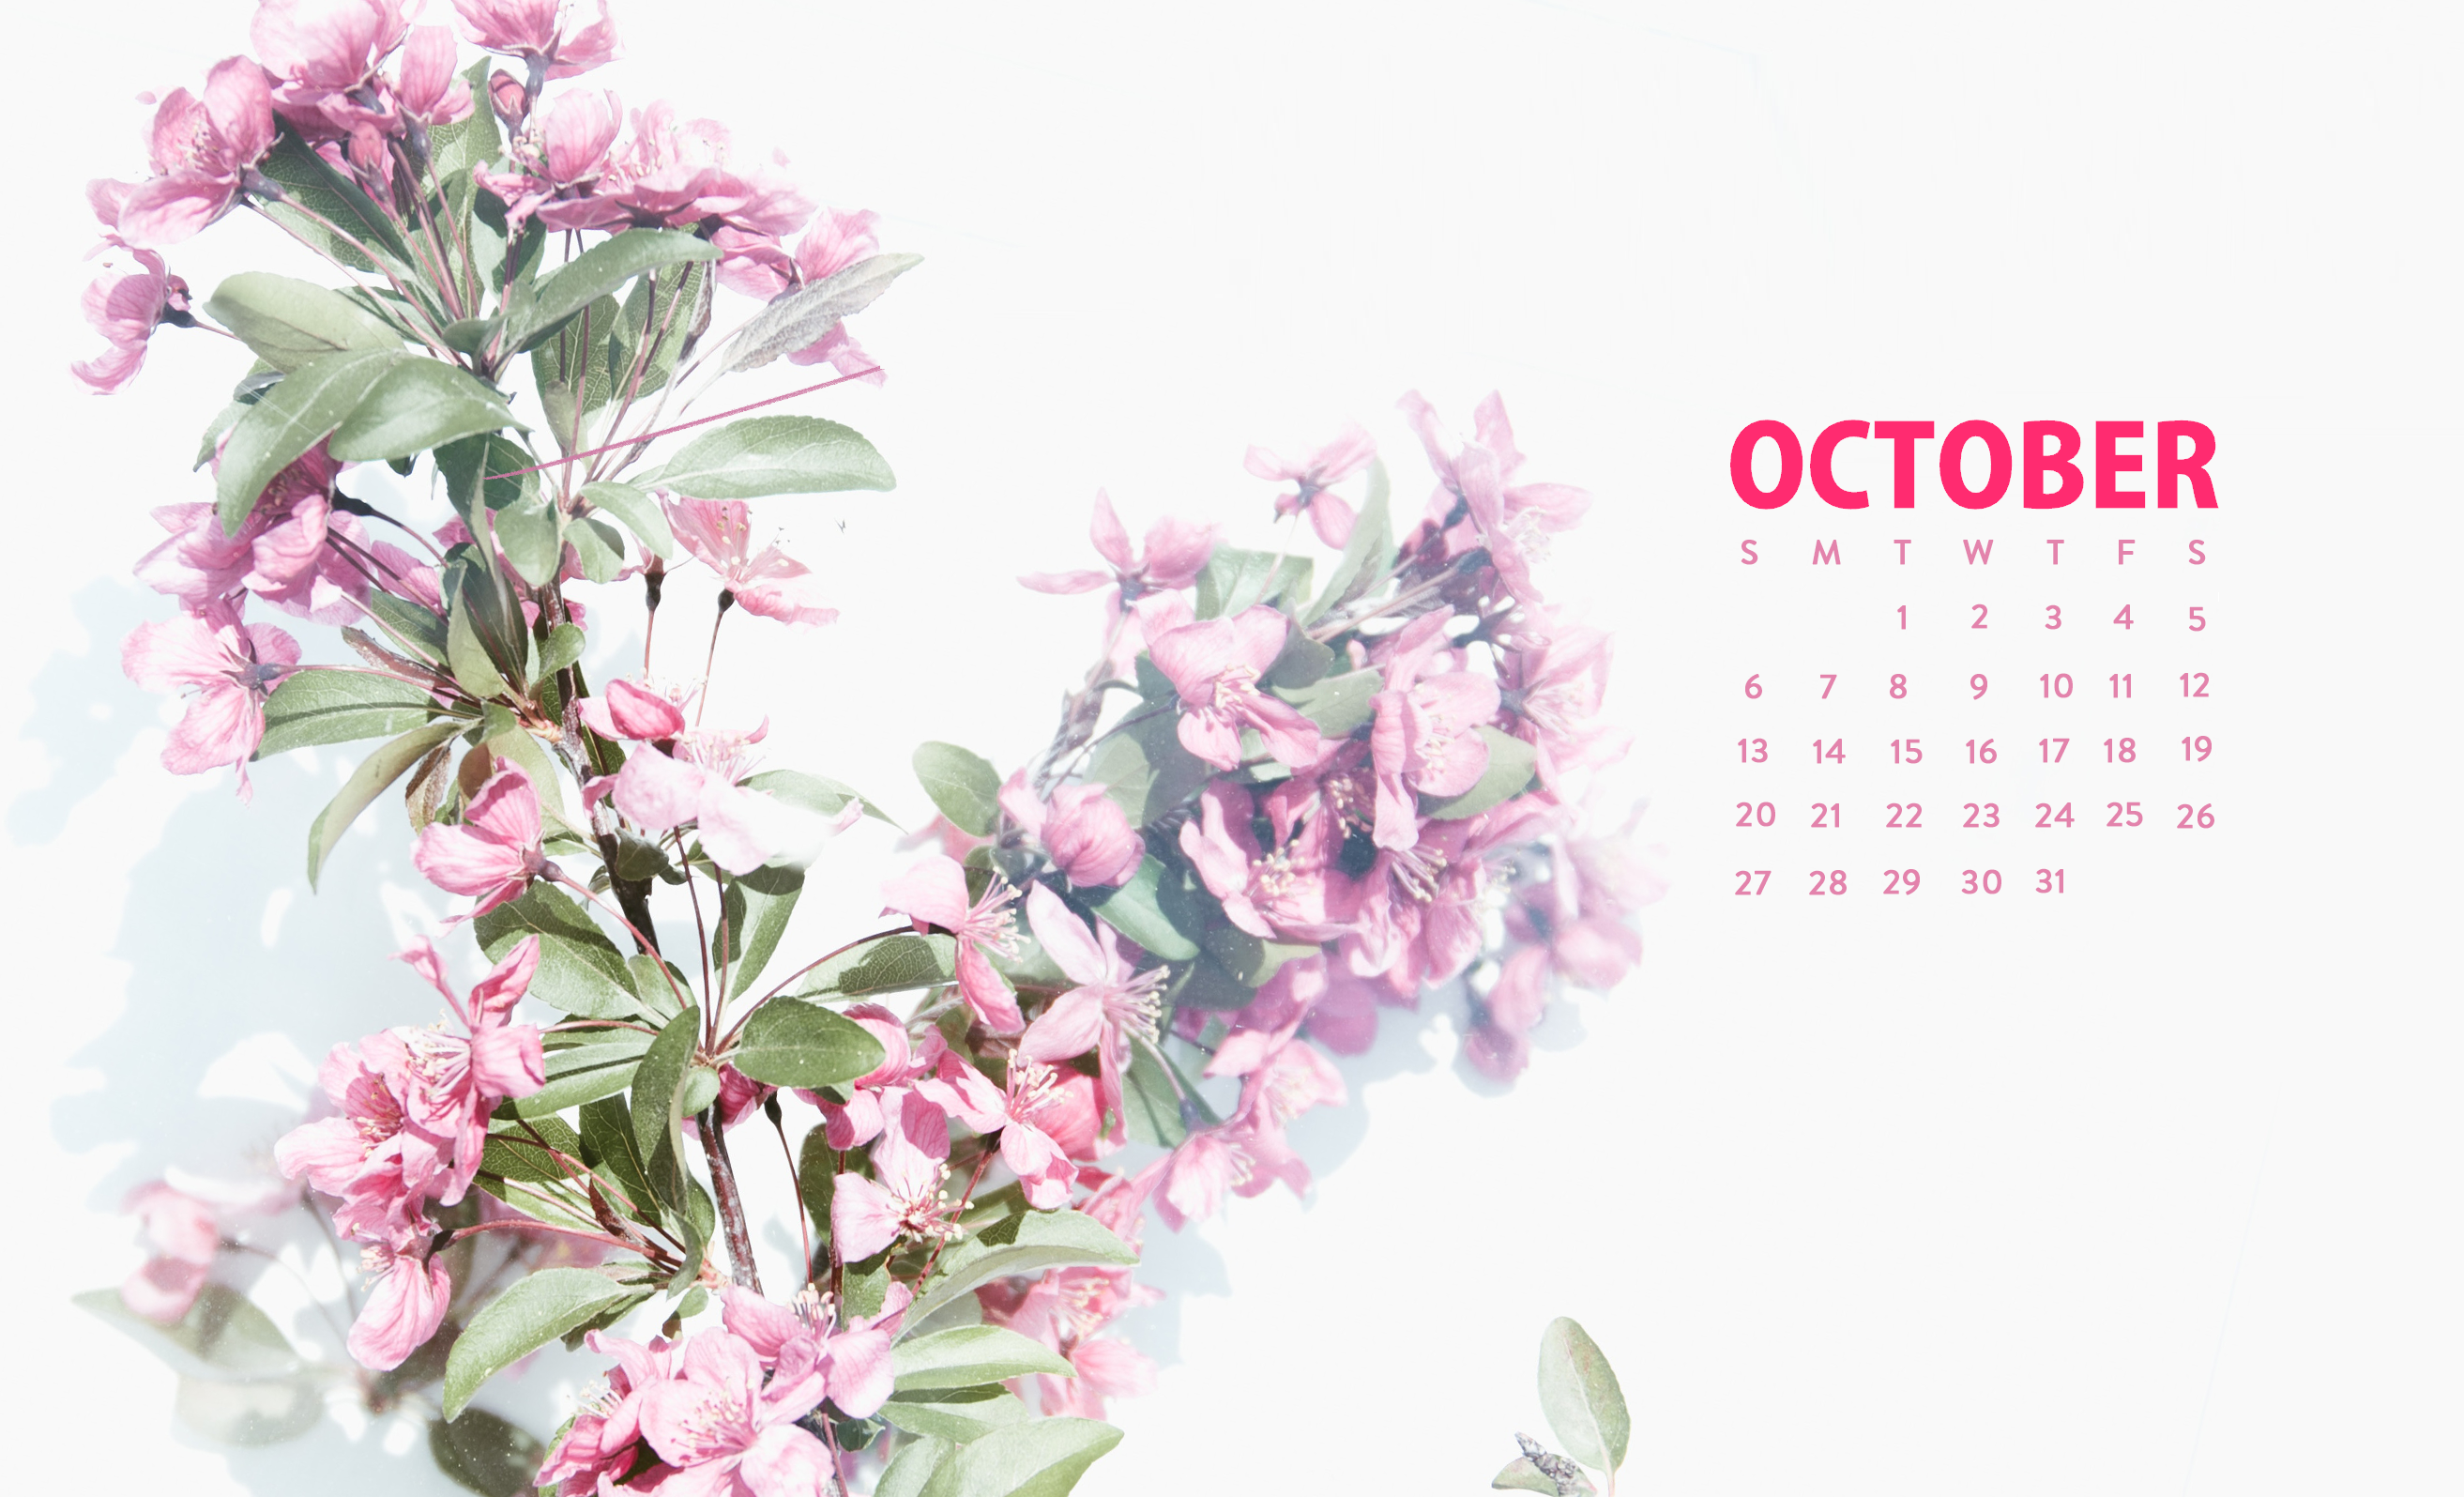 10 October 2020 Calendar Plant Floral Cute Wallpaper In 2020 Desktop Wallpaper Calendar October Wallpaper Calendar Wallpaper